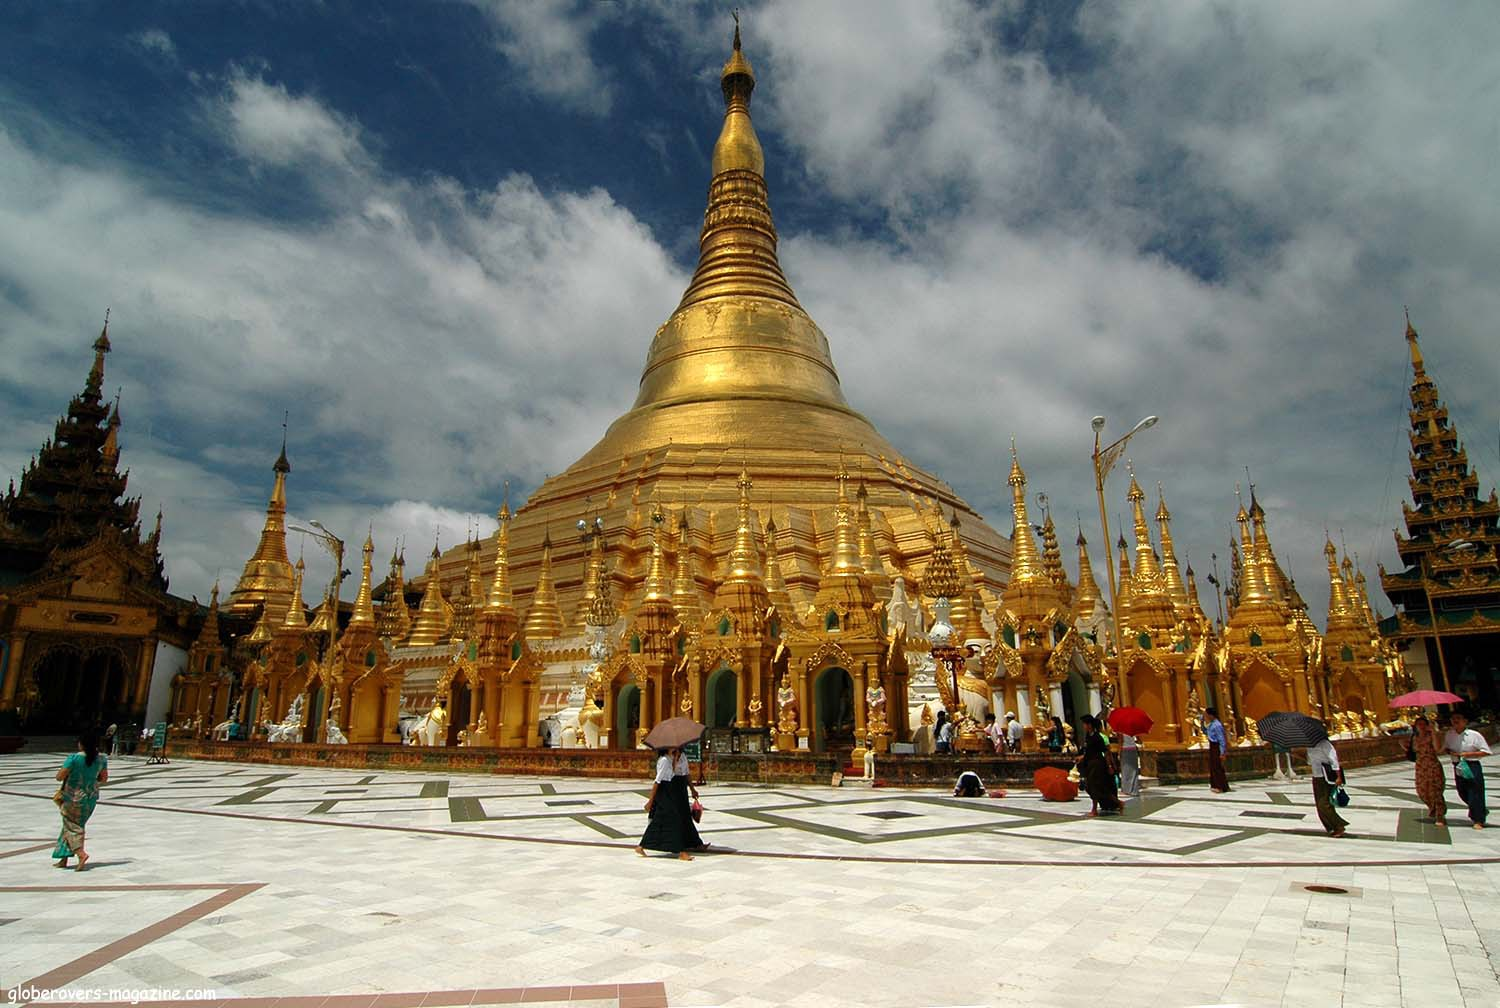 This Is The Largest City Of Myanmar And Was Well Known As Rangoon Previously You Can Visit 2 500 Year Old Shwen Paa There